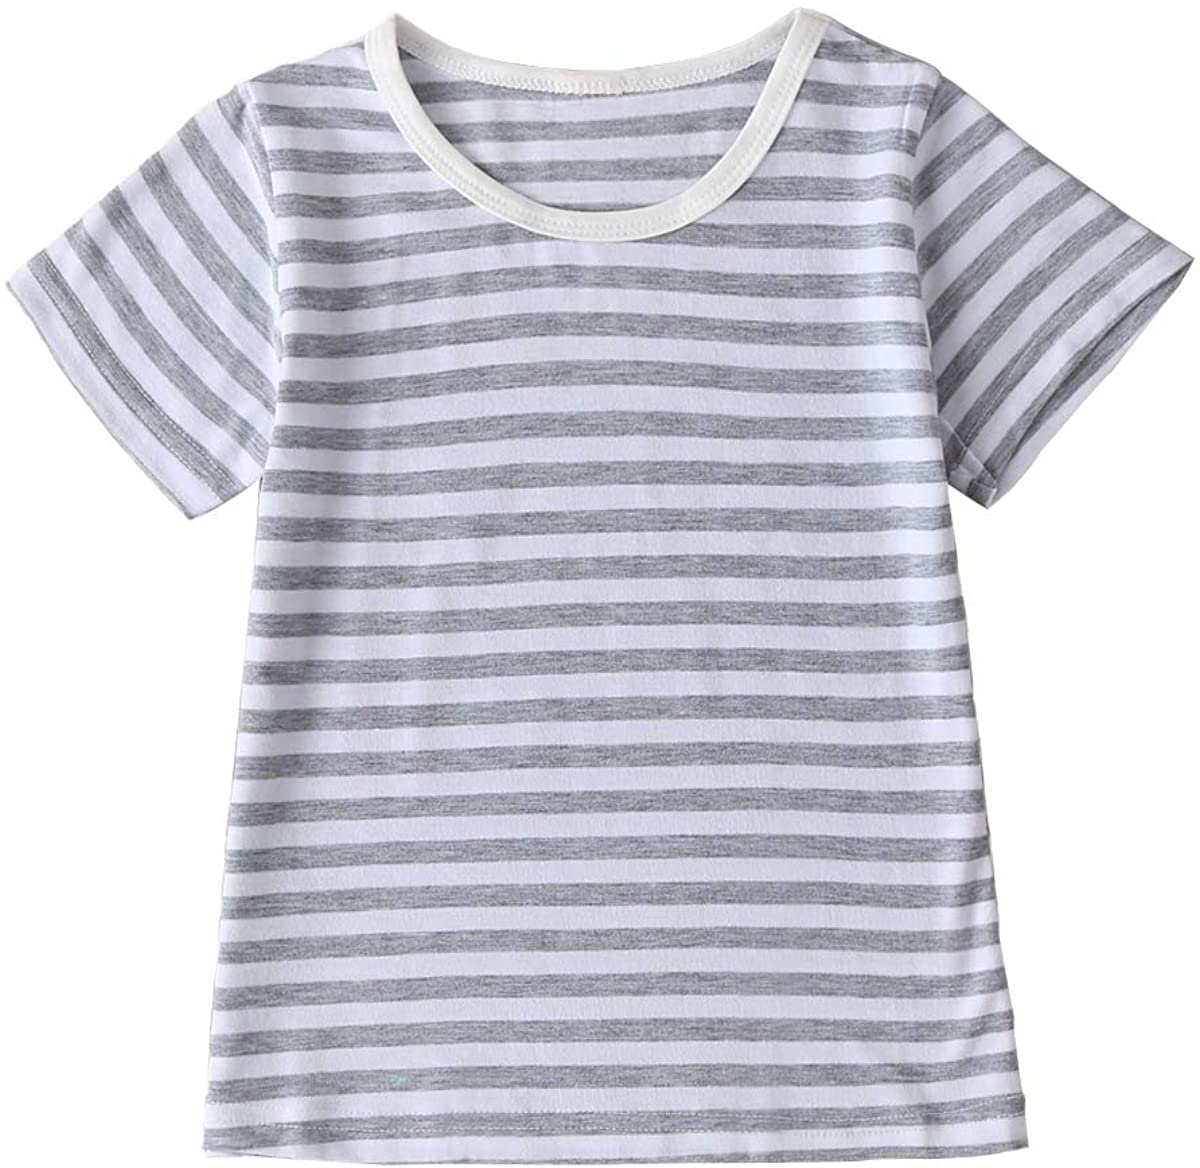 Toddler Kids Clothes Short Sleeves Striped T-Shrit Top Baby Boy Blouse Shirt Tees Summer